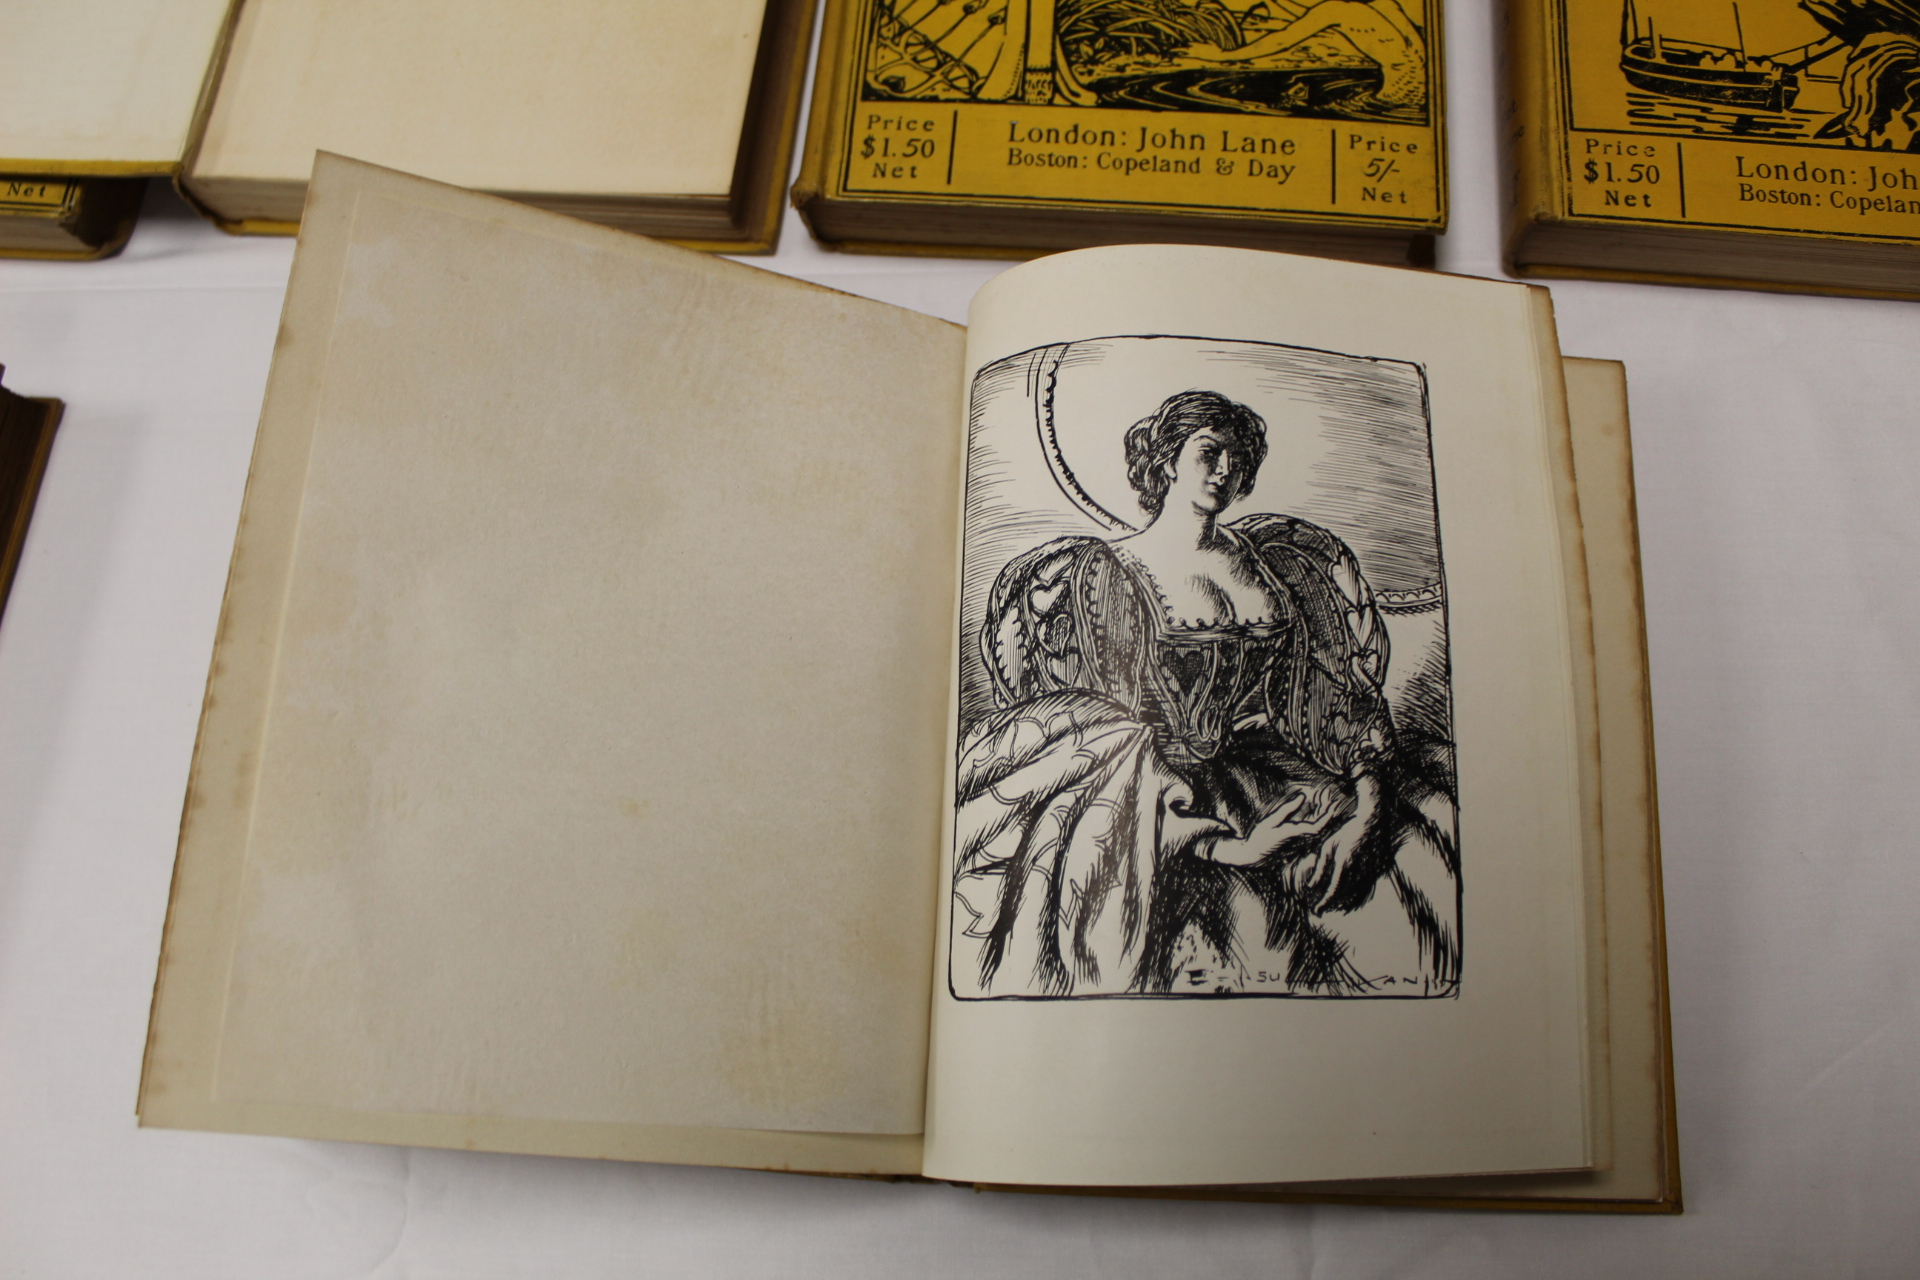 THE YELLOW BOOK.An Illustrated Quarterly. A set of 13 vols., many fine illus. Small quarto. - Image 28 of 45